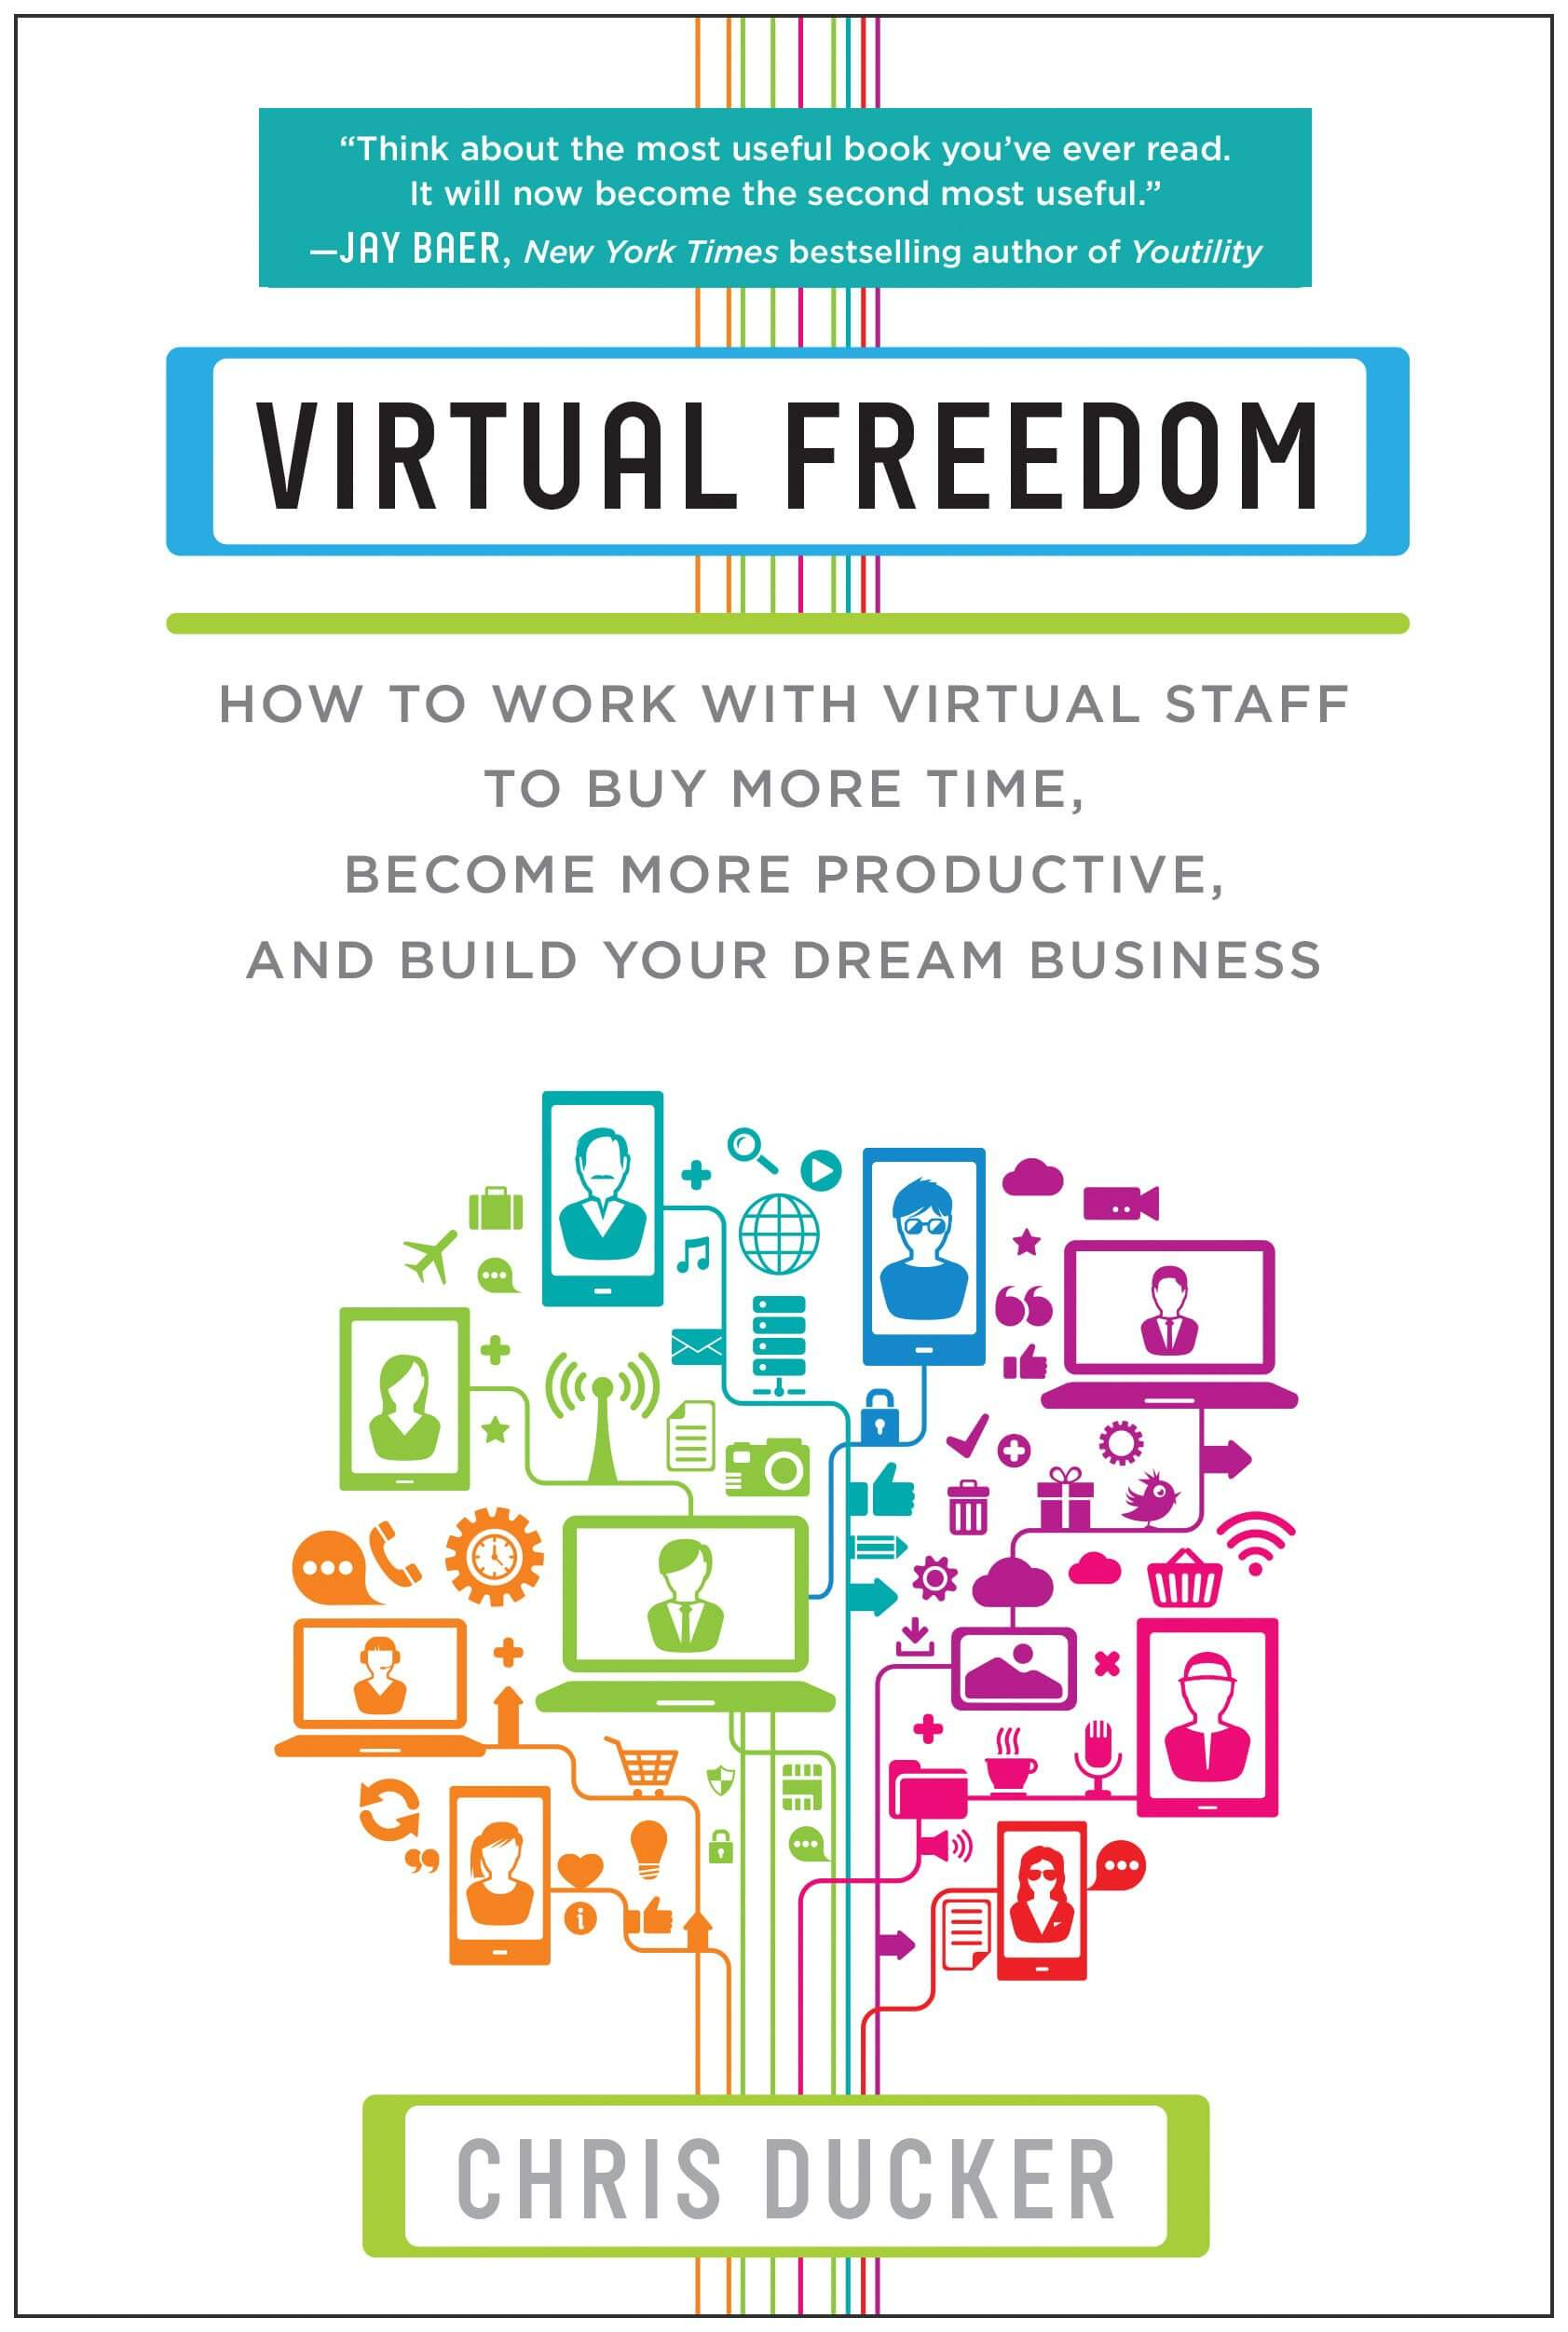 Summary of Virtual Freedom by Chris Ducker